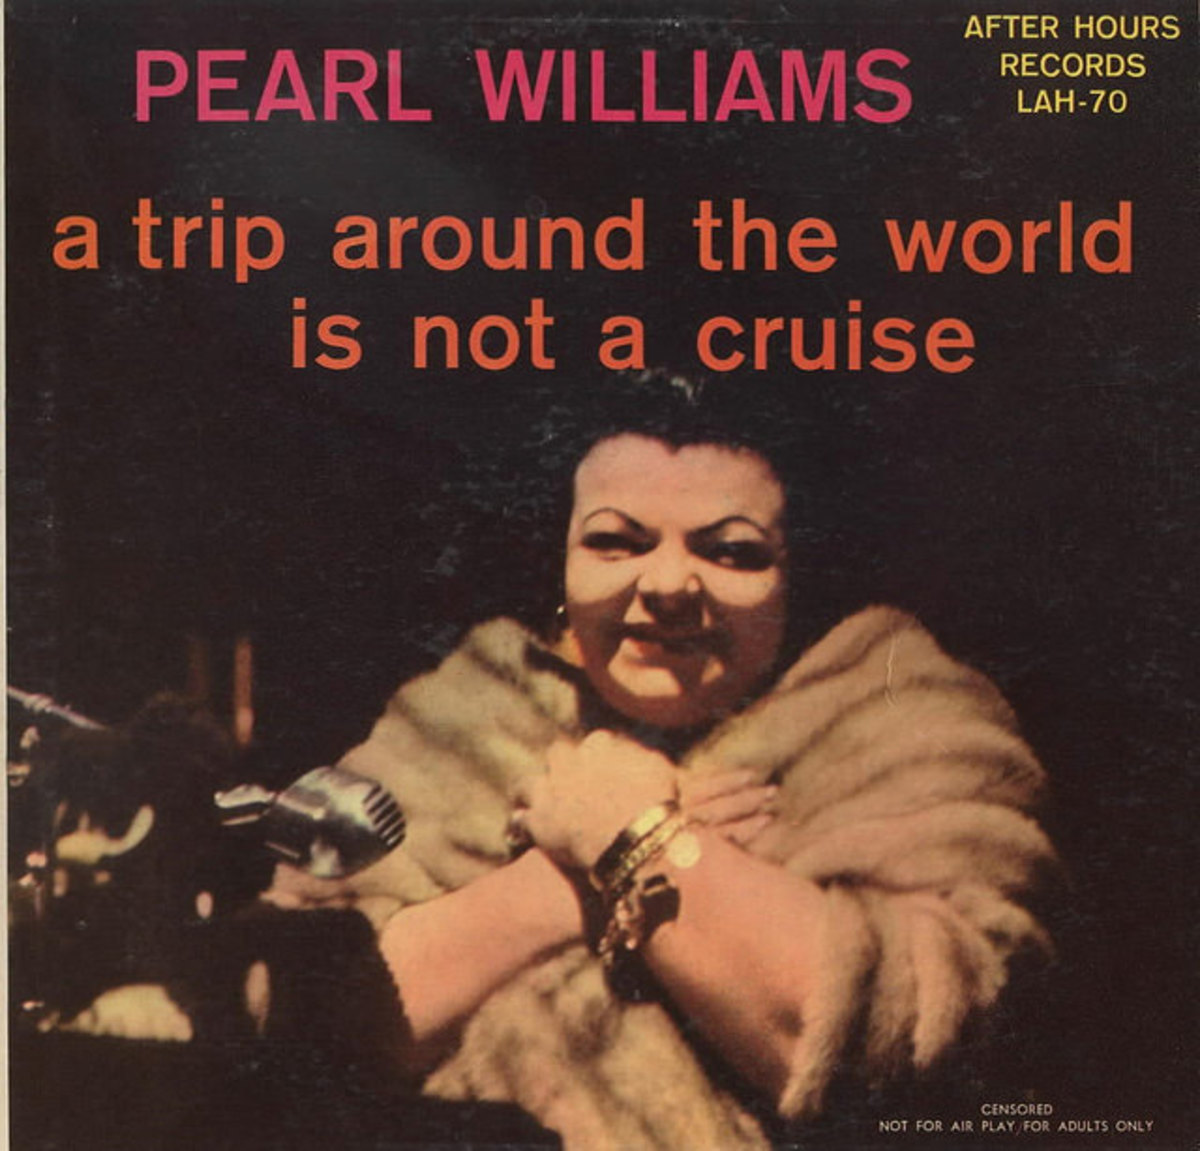 "Pearl Williams ""A Trip Around the World Is Not A Cruise"" After Hours Records LAH-70  12"" Vinyl Records (1962)"